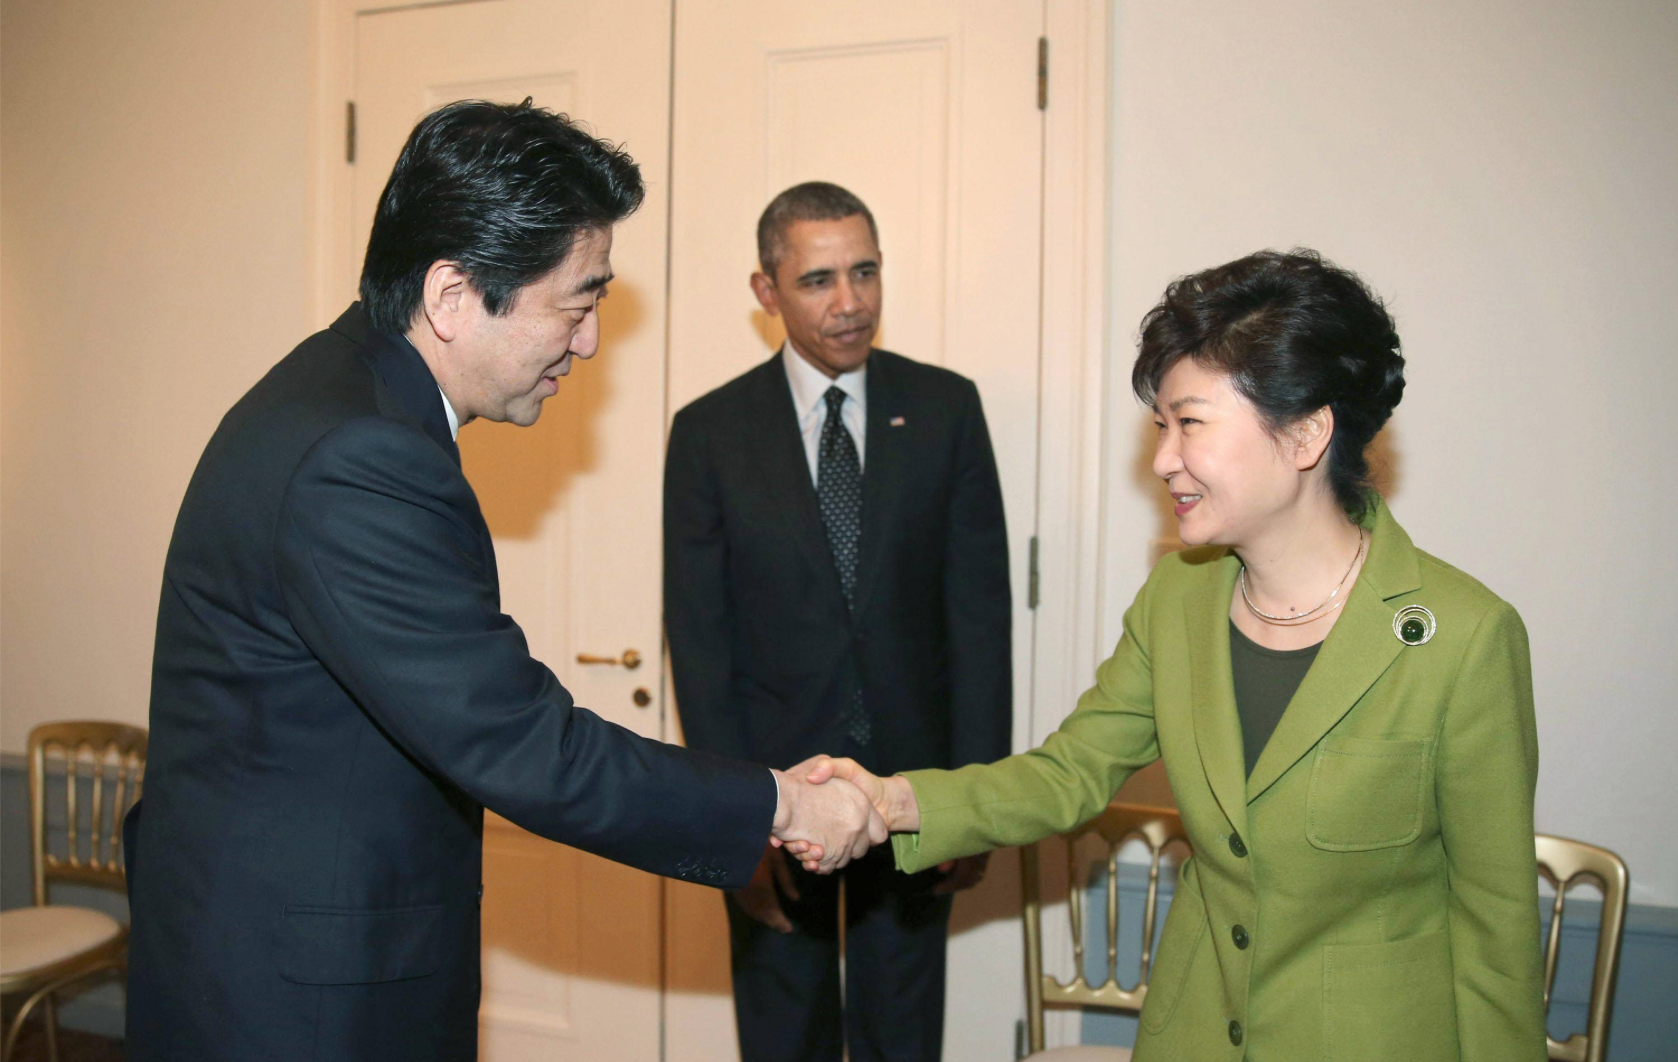 Prime Minister Shinzo Abe, U.S. President Barack Obama and South Korean President Park Geun-hye in 2014. Kyodo Photo